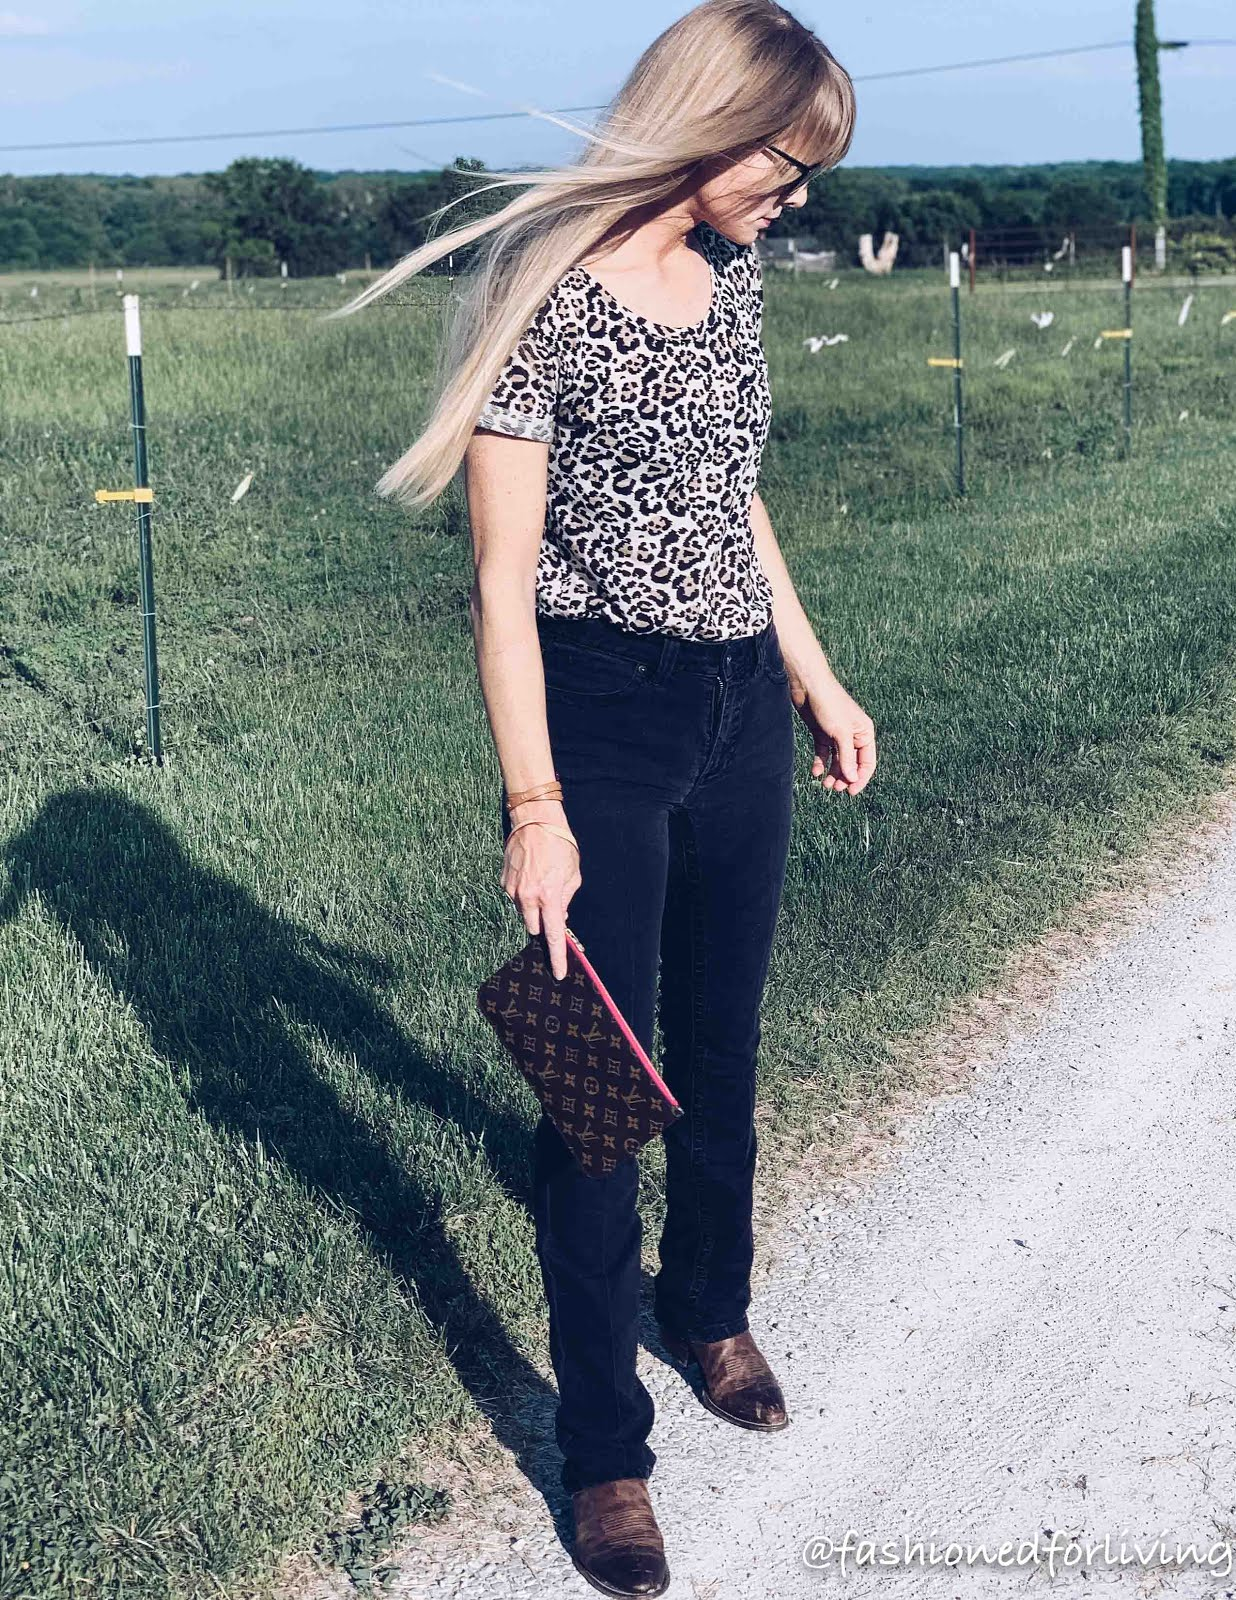 kimes betty jeans outfit with leopard tee. cowgirl boots